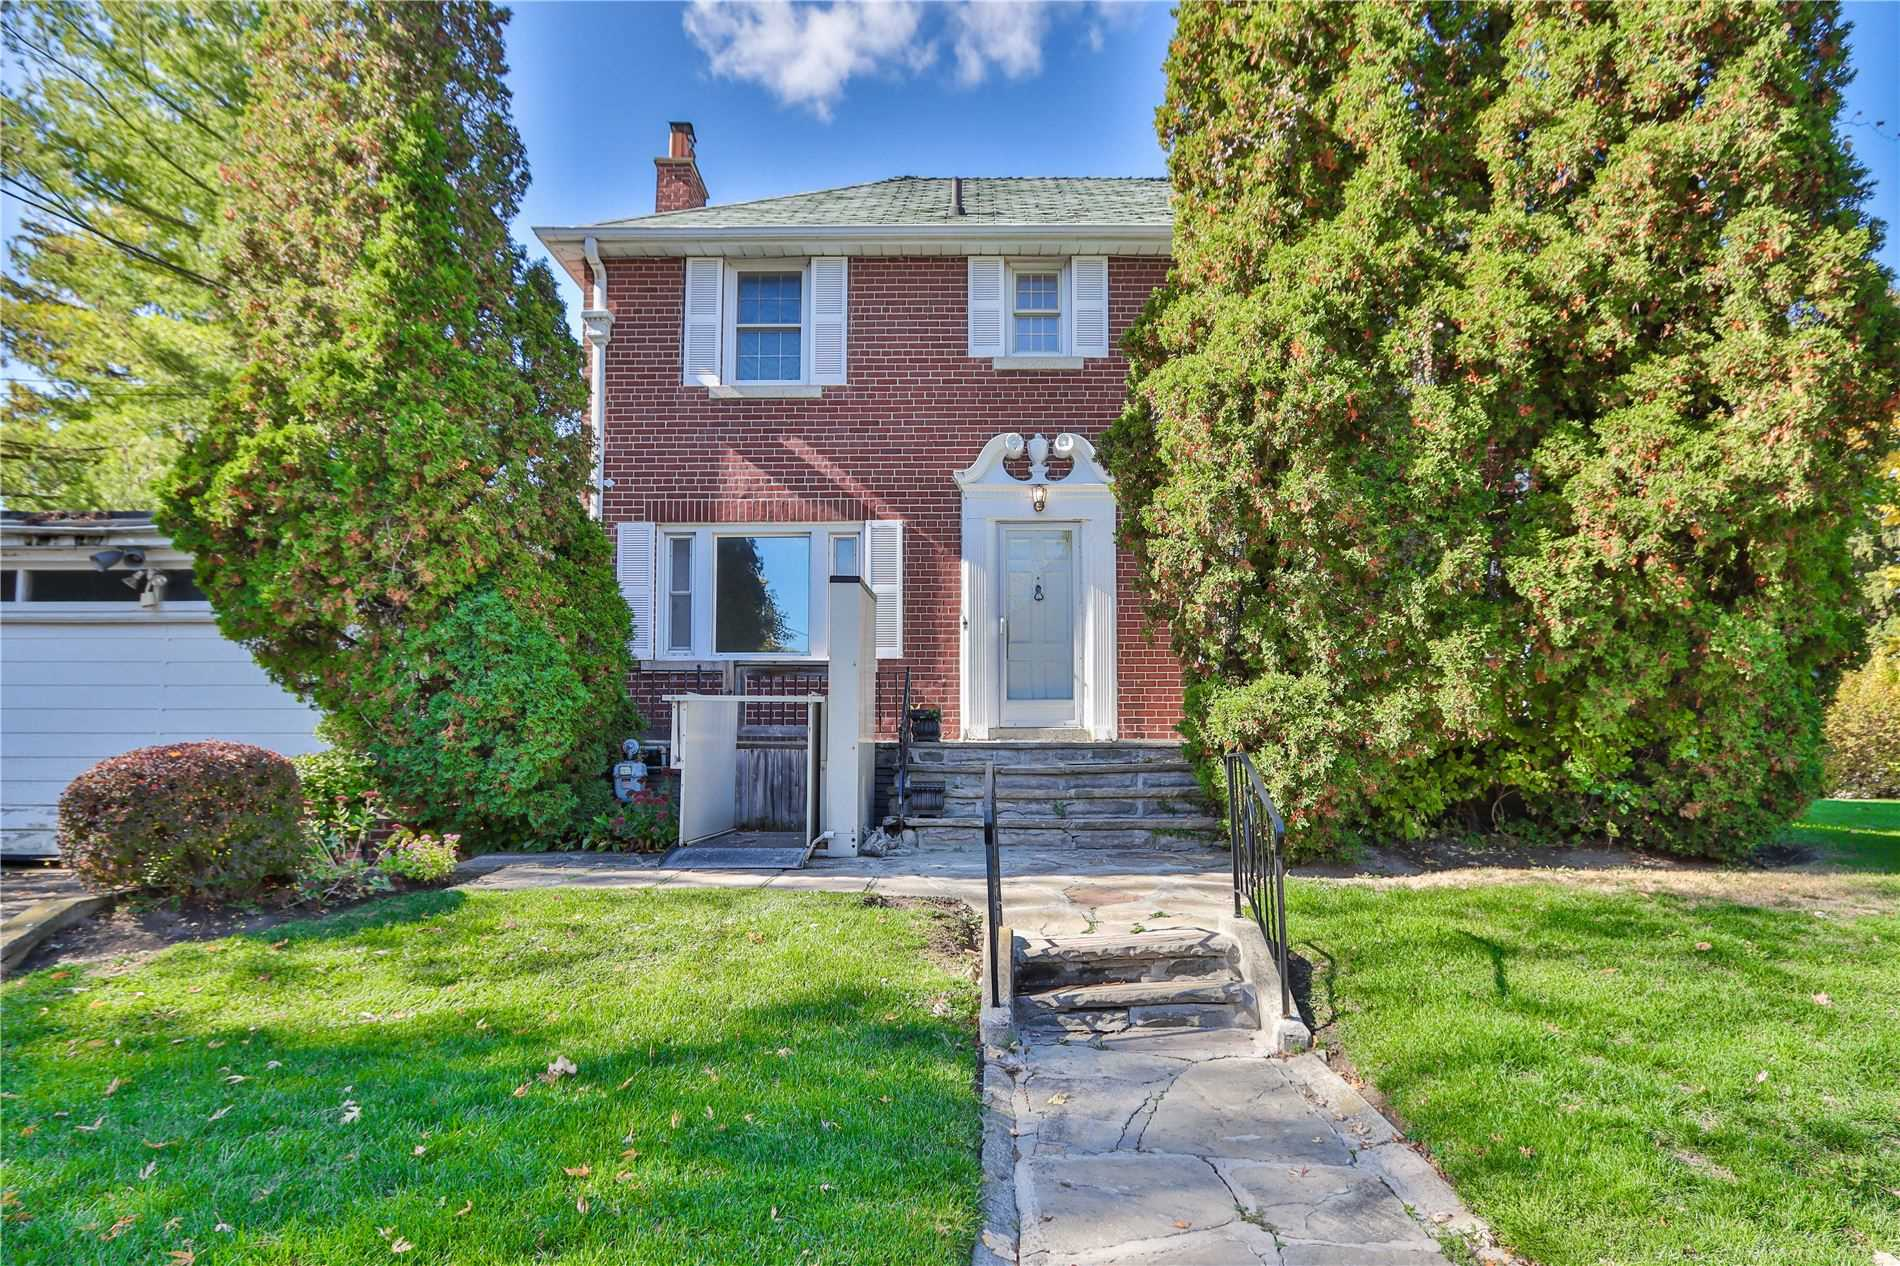 FEATURED LISTING: 186 Humewood Drive Toronto